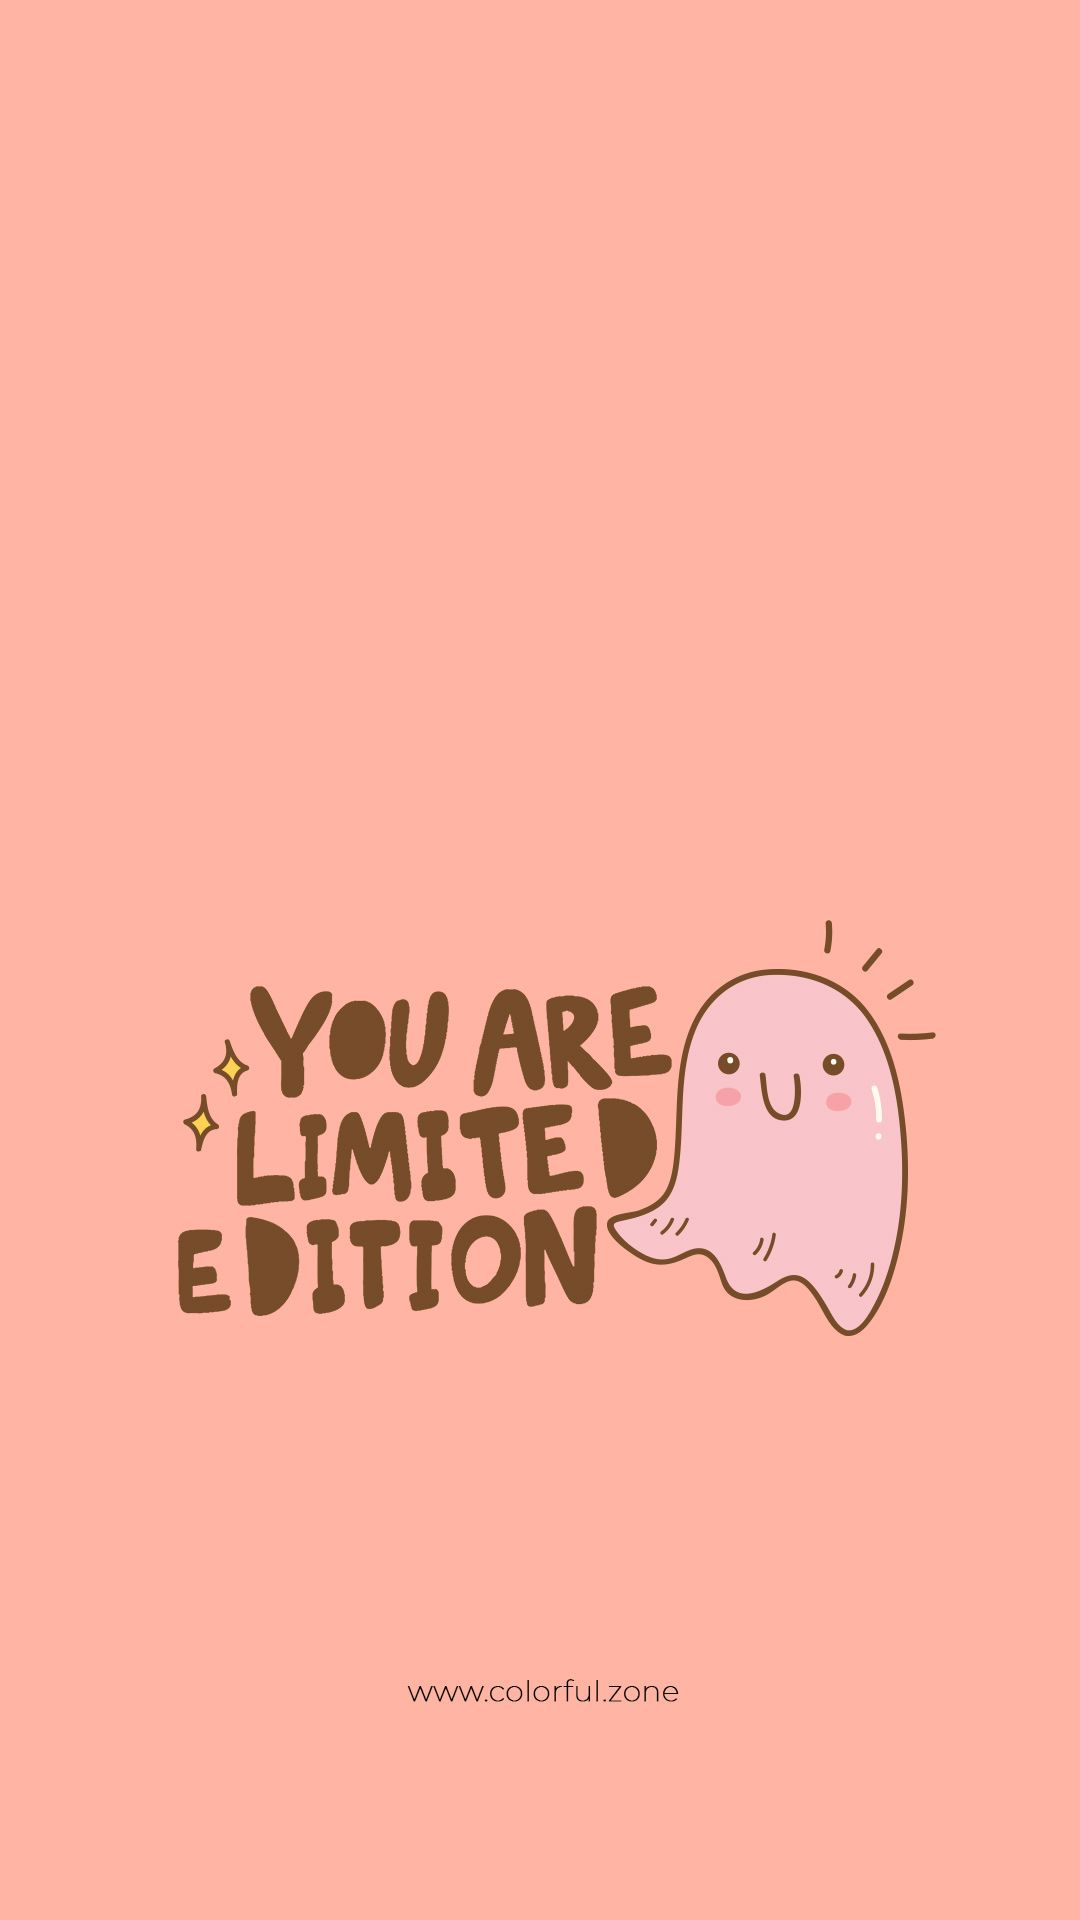 Free Colorful Smartphone Wallpaper - You are limited edition